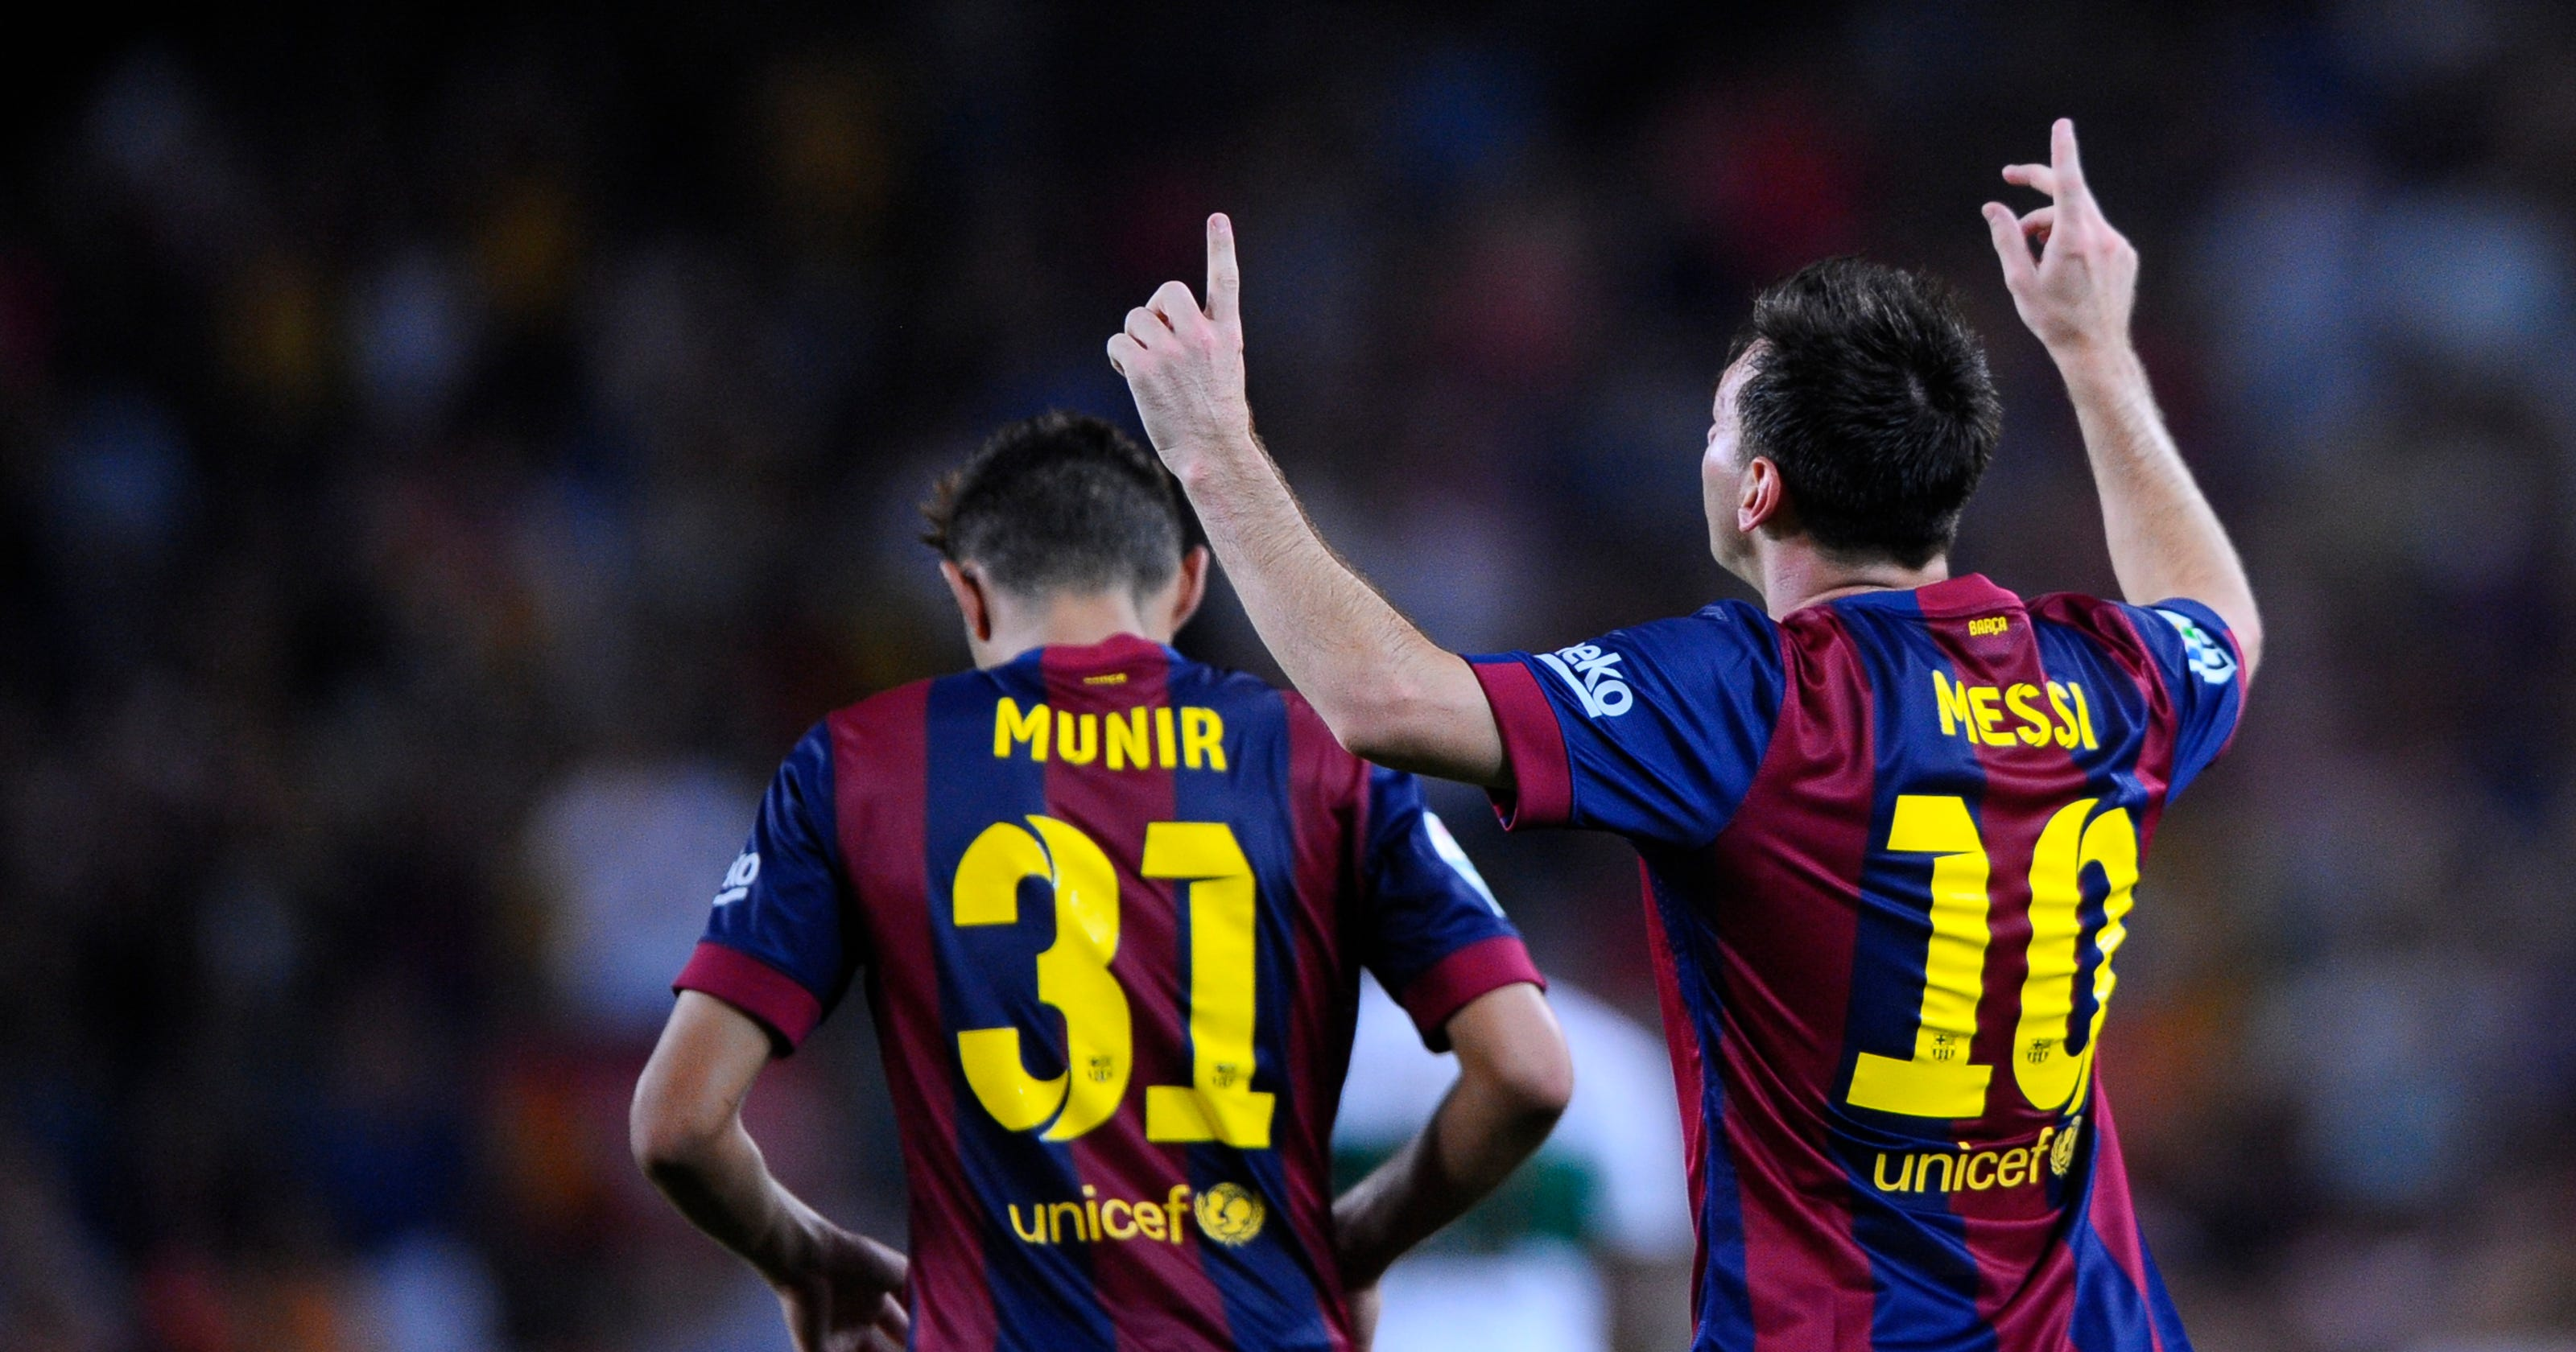 Lionel Messi back to the top of AP soccer poll